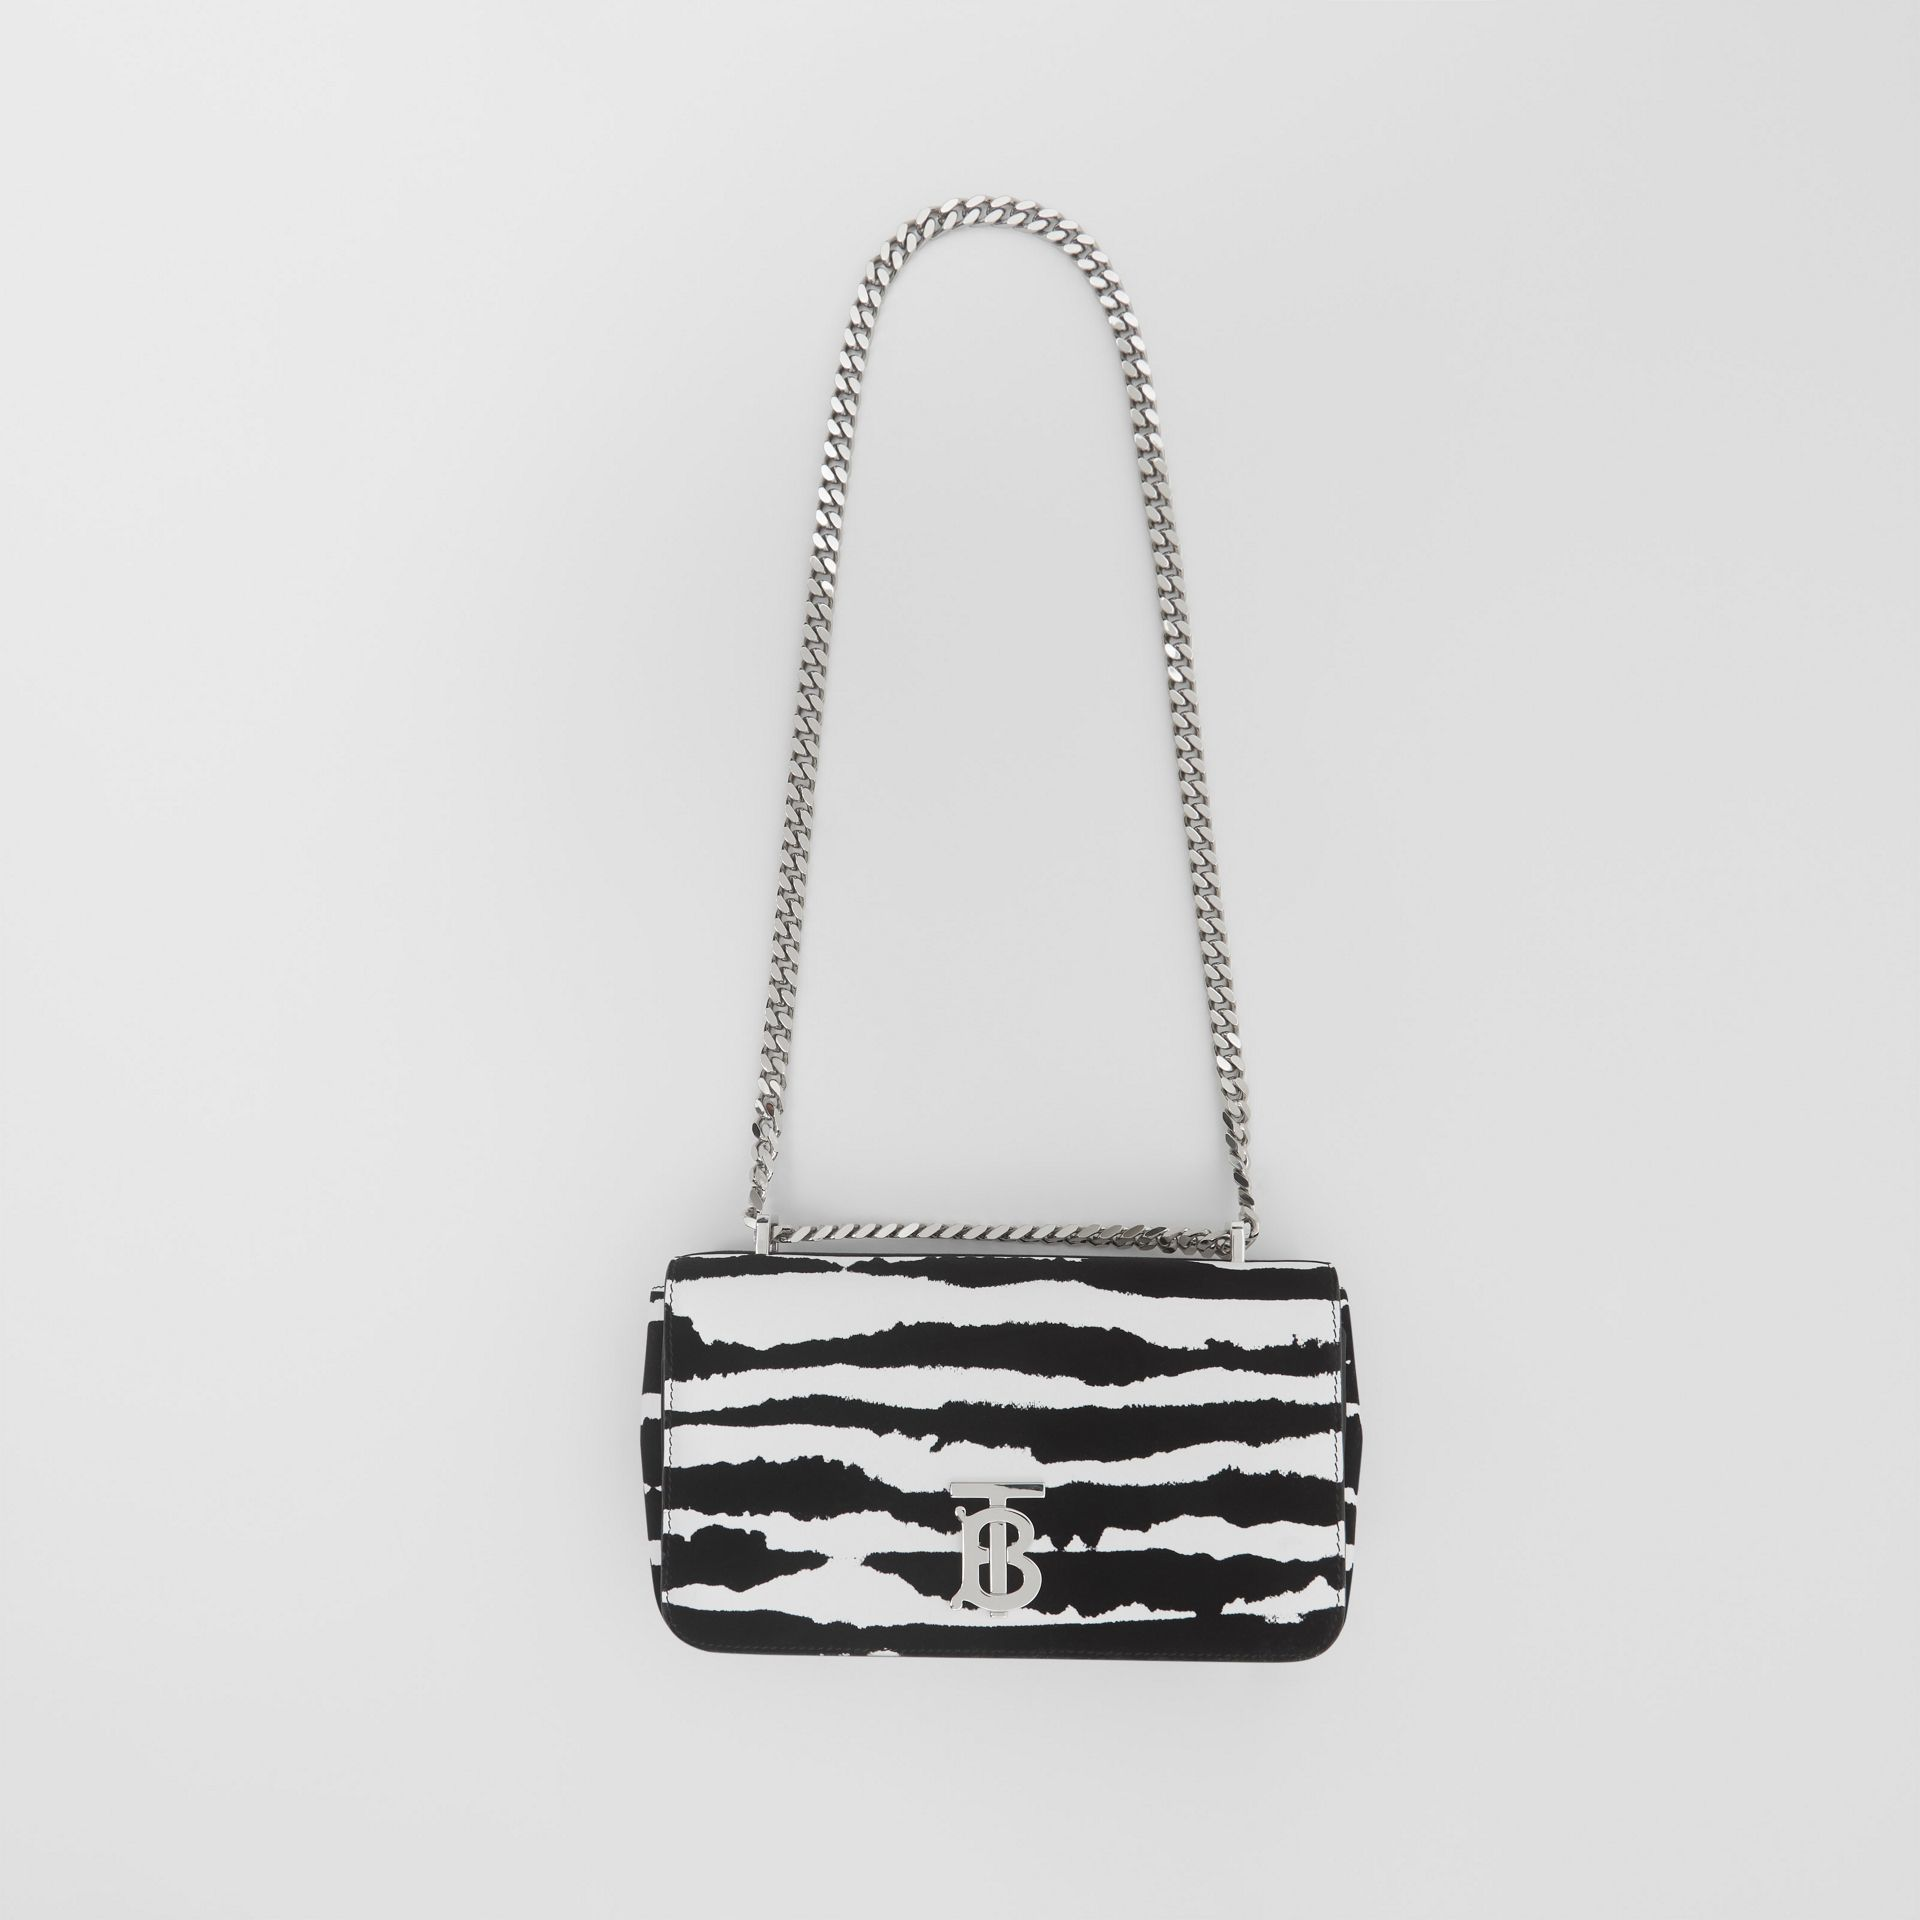 Small Watercolour Flock Leather Lola Bag in White/black - Women | Burberry United Kingdom - gallery image 3